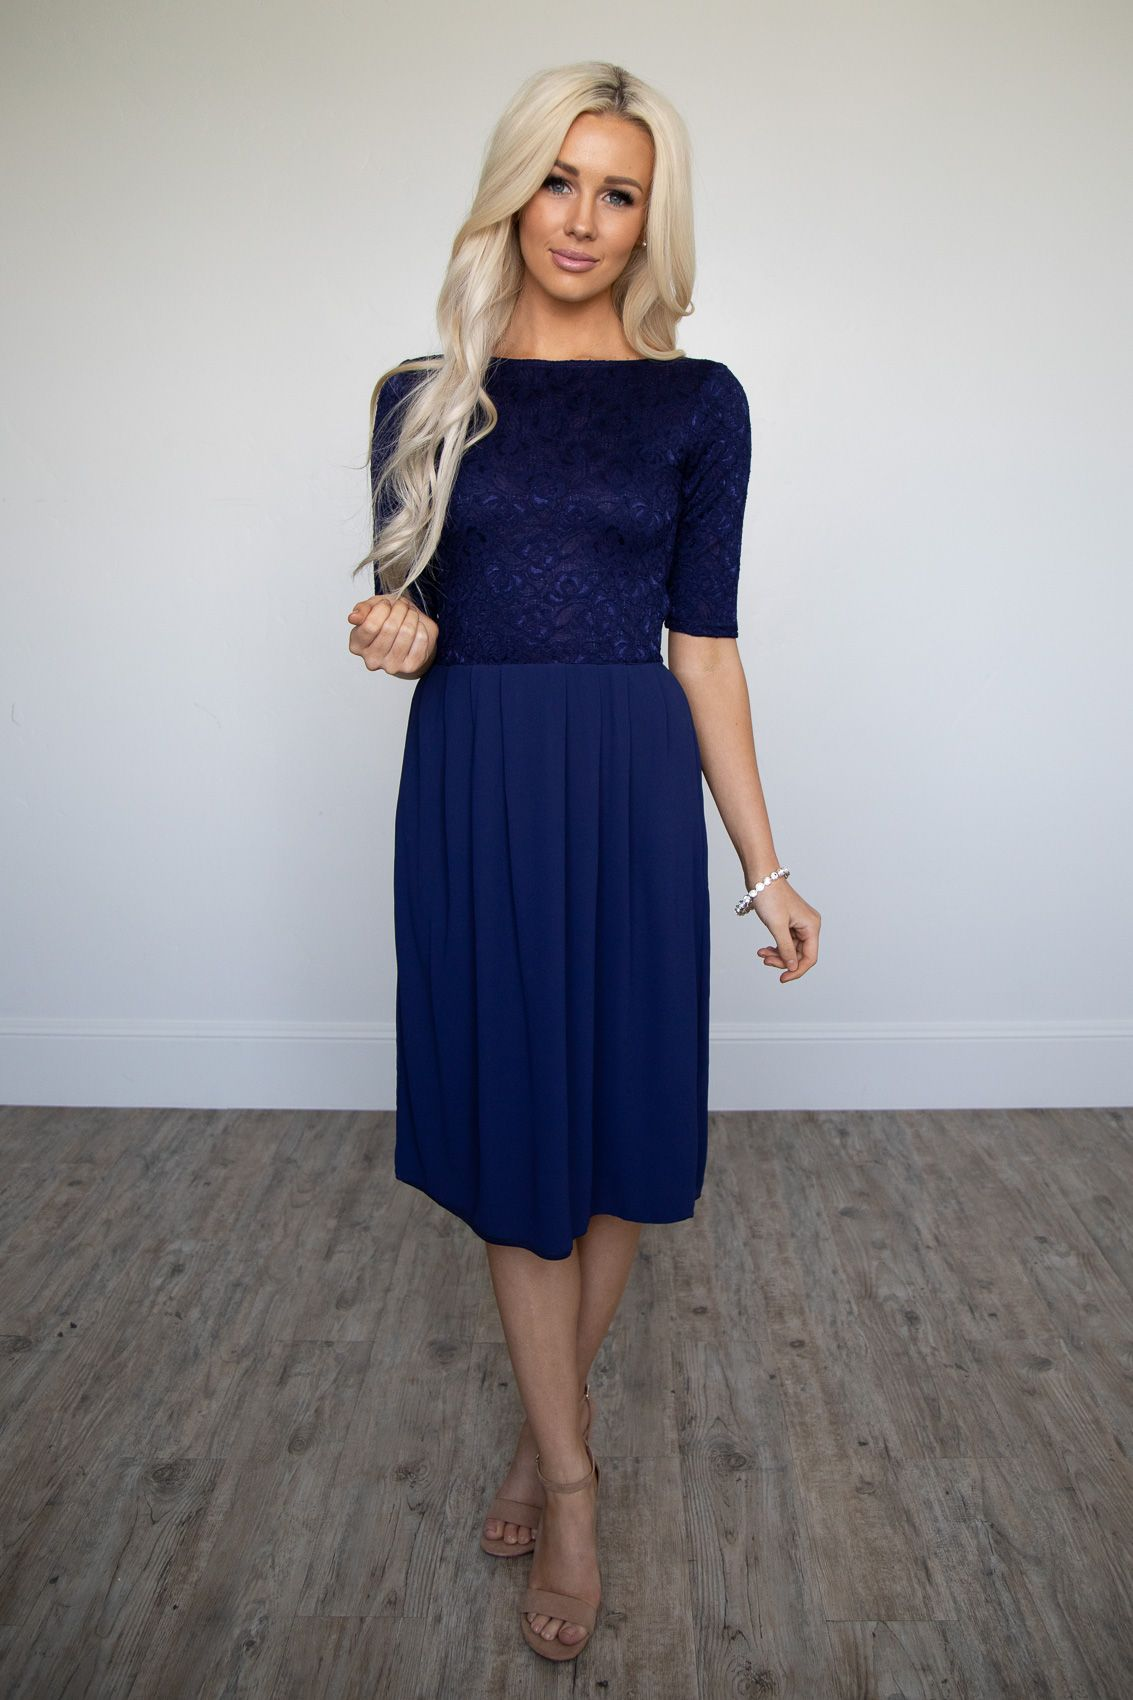 Jada modest dress or bridesmaid dress in navy blue lace